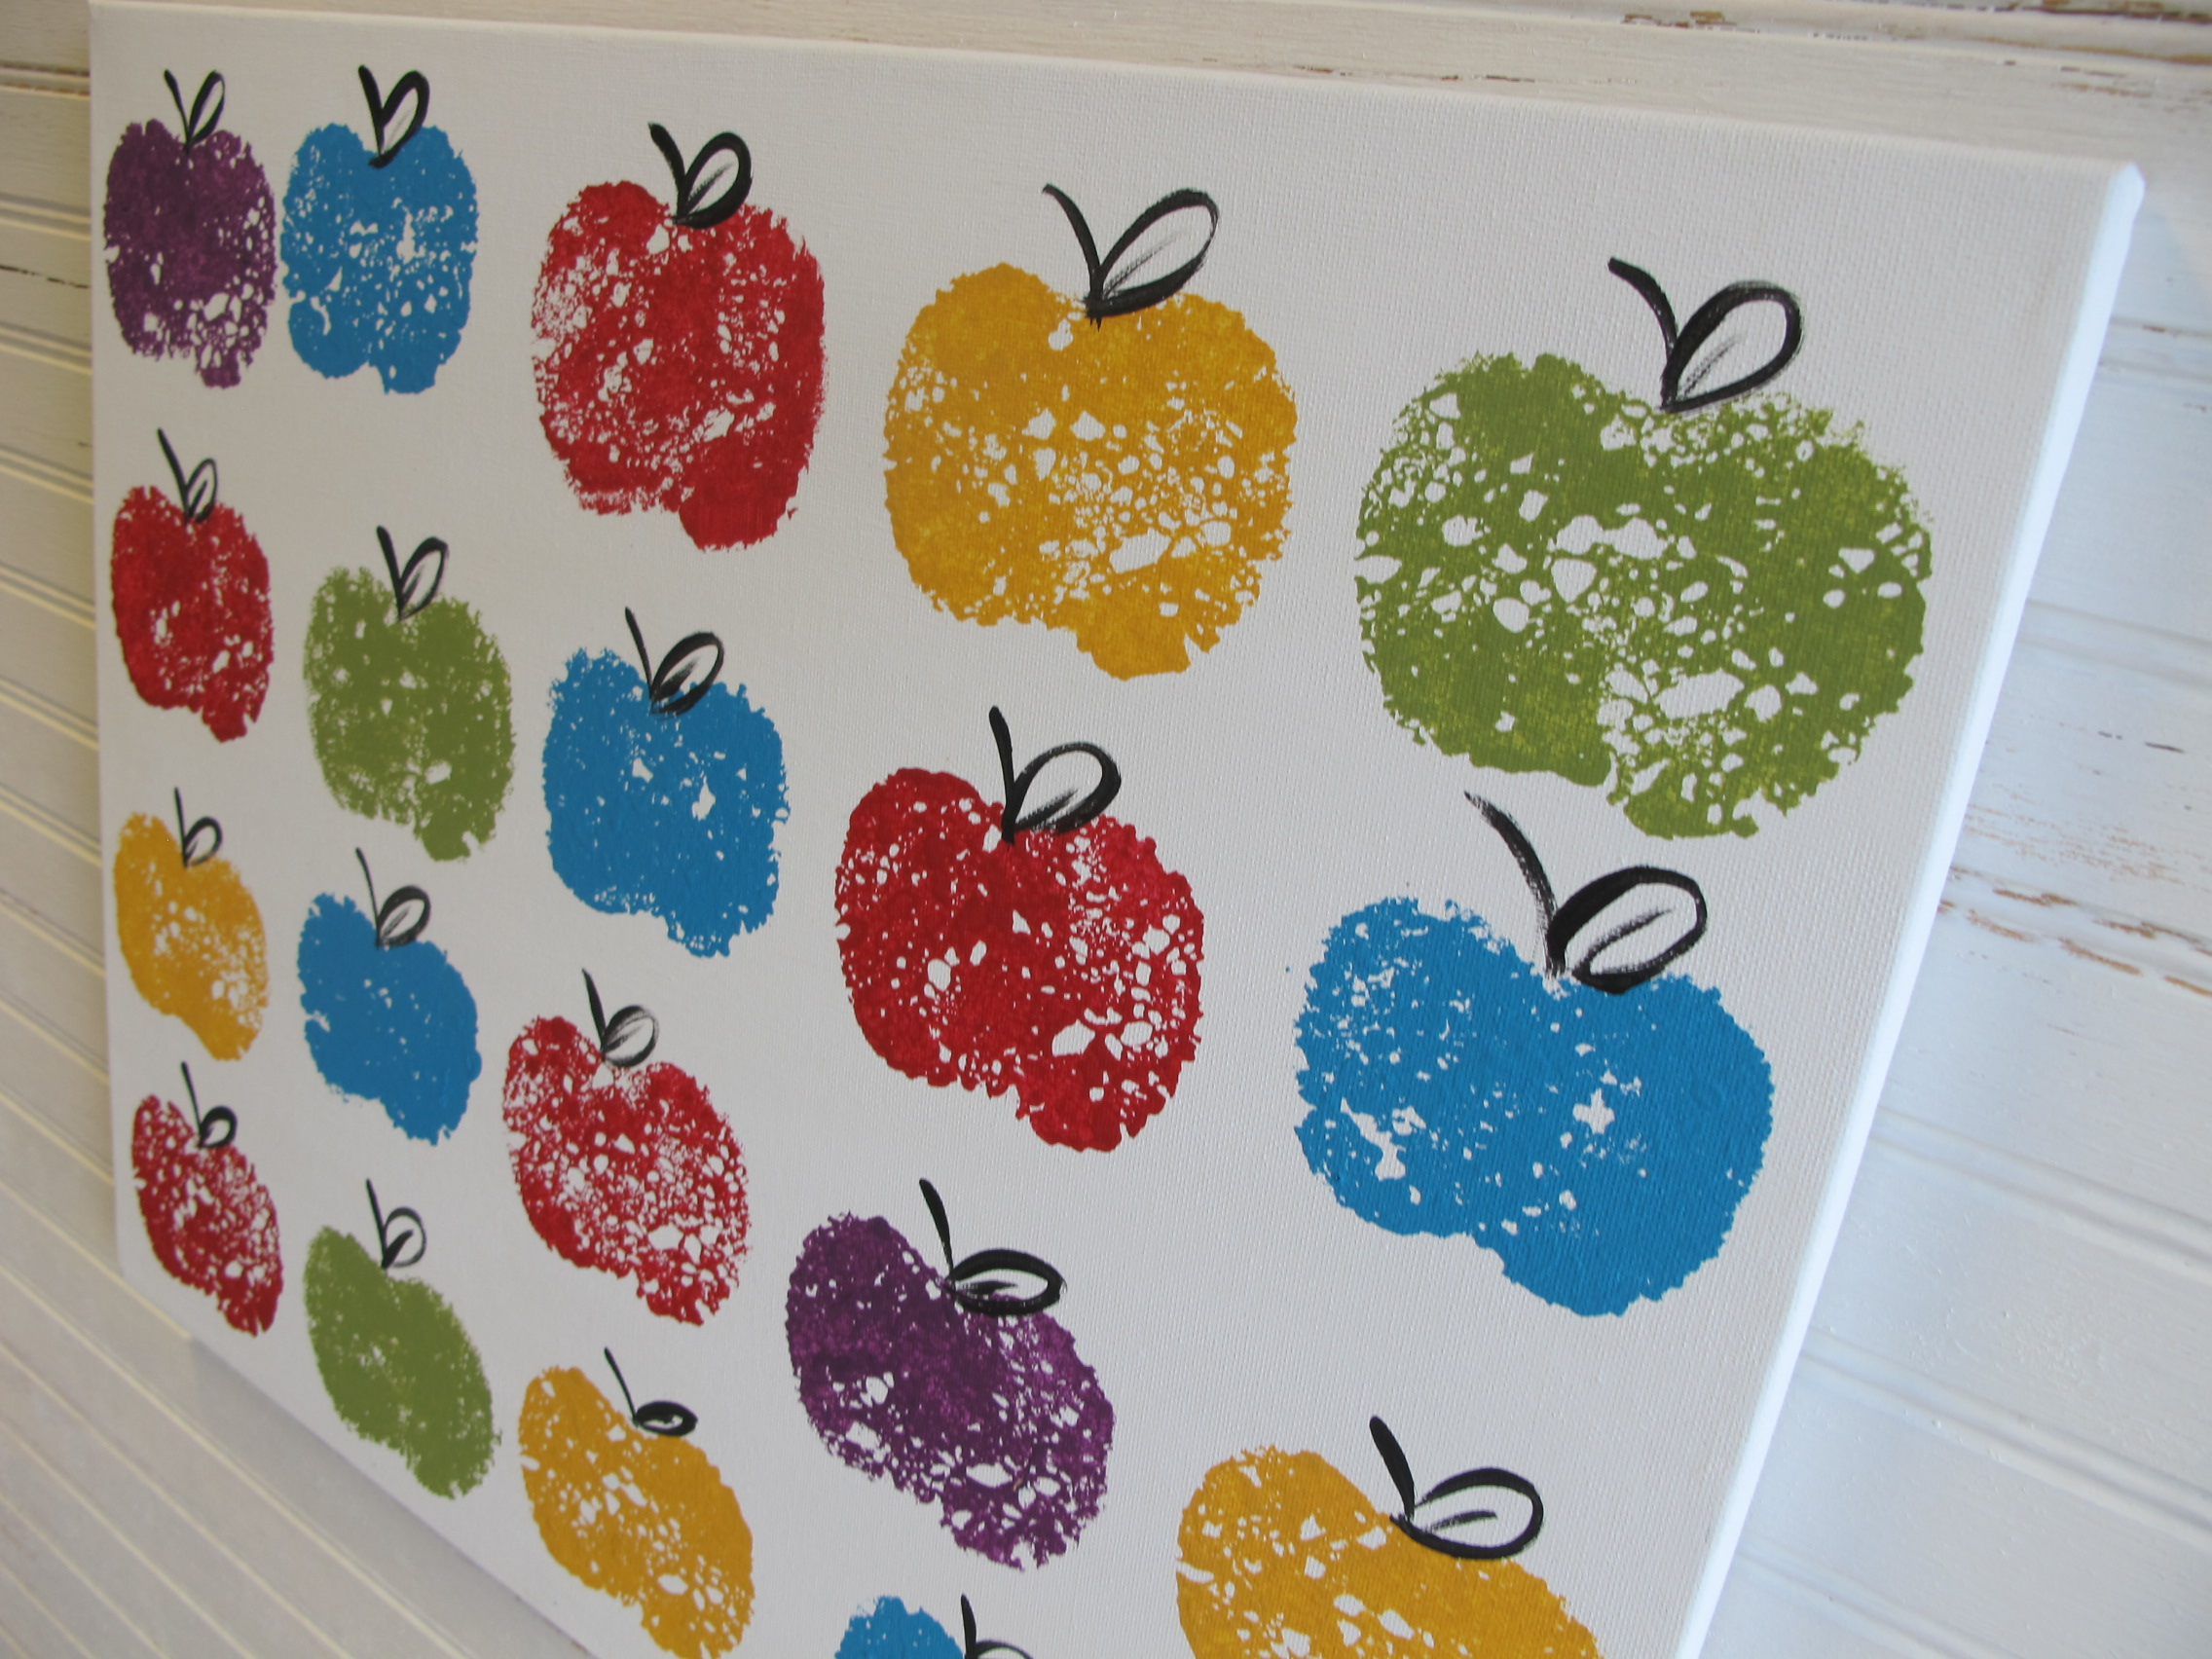 16x20 Repeat Colorful Apples - $50